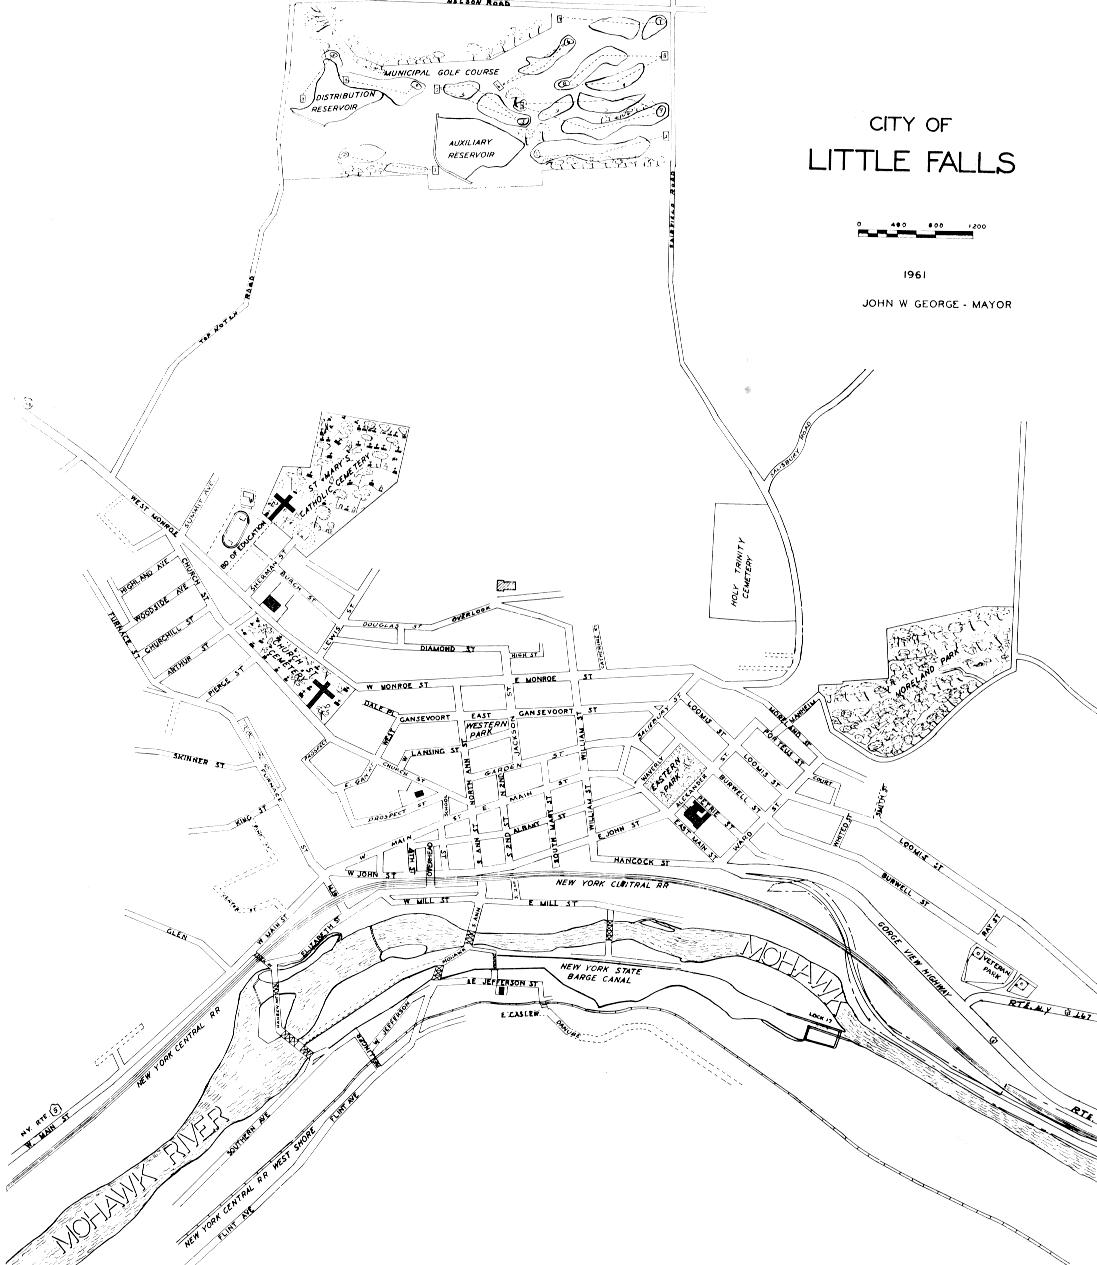 little falls 1940 Plymouth Sedan map of the city of little falls